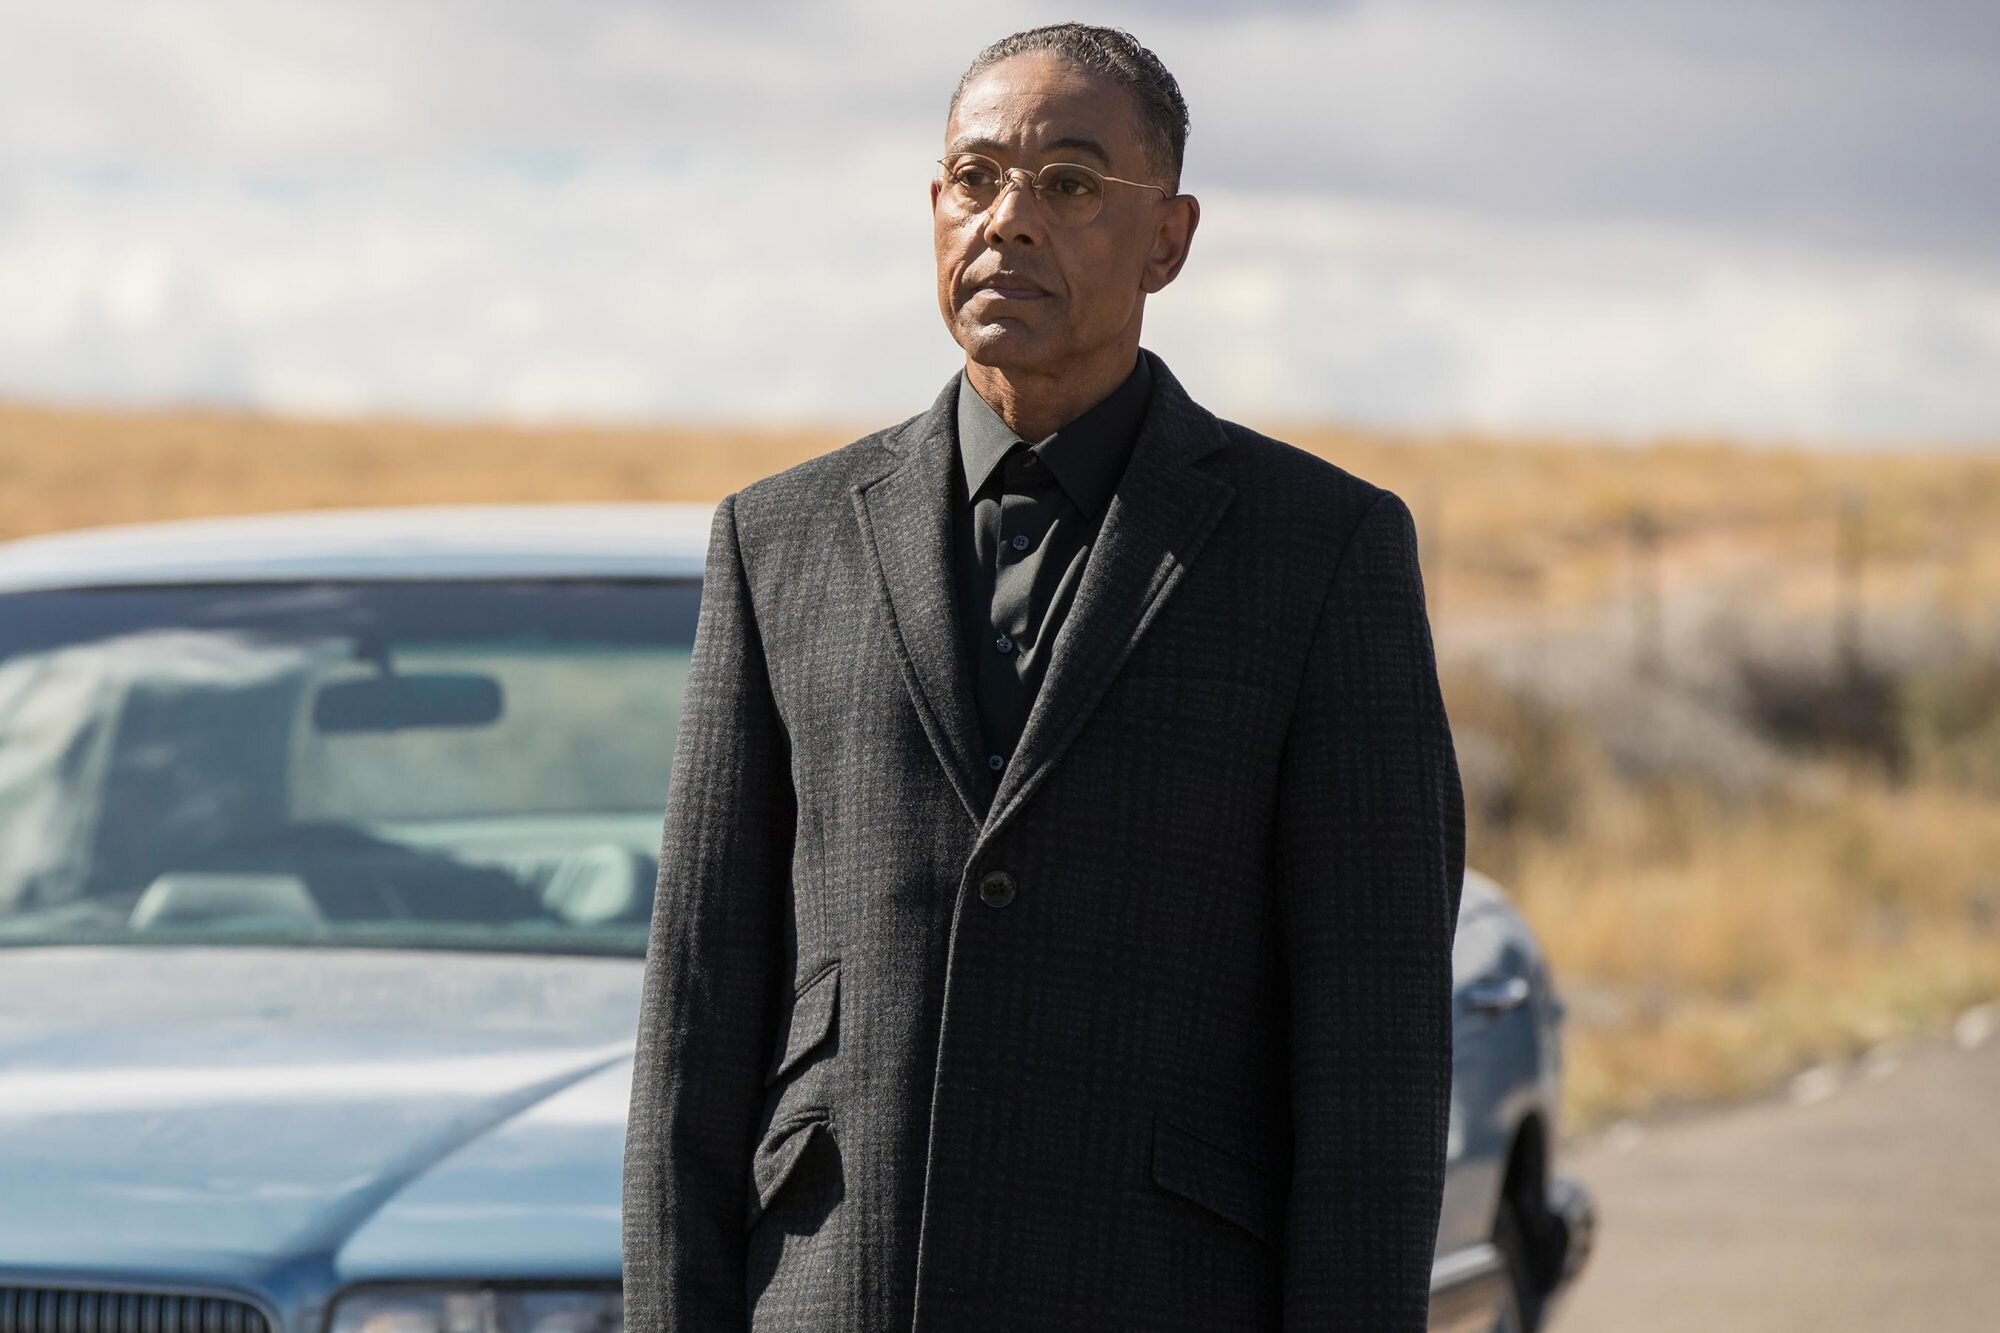 Better Call Saul: Giancarlo Esposito talks Gus Fring and season 3 | EW.com